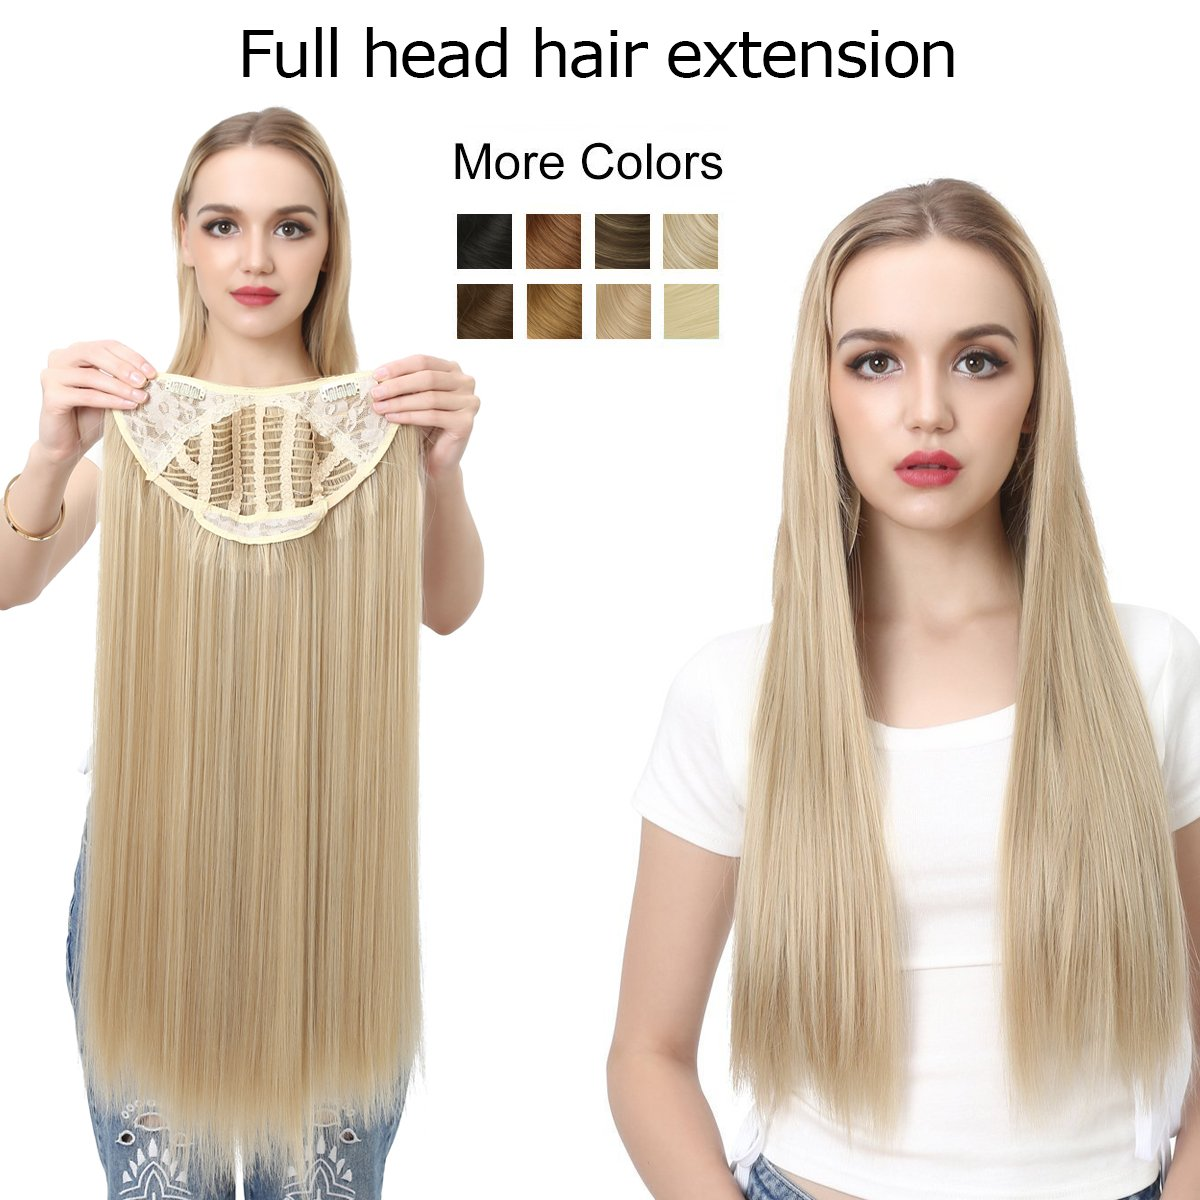 """Clip in Hair Extension Blonde Straight Long Thick Full Head One Piece U shape 24"""" 0.37lb 170g Synthetic Hairpiece For Women Natural Real Hair Piece Japan High Temperature Fiber(UH16#613)"""